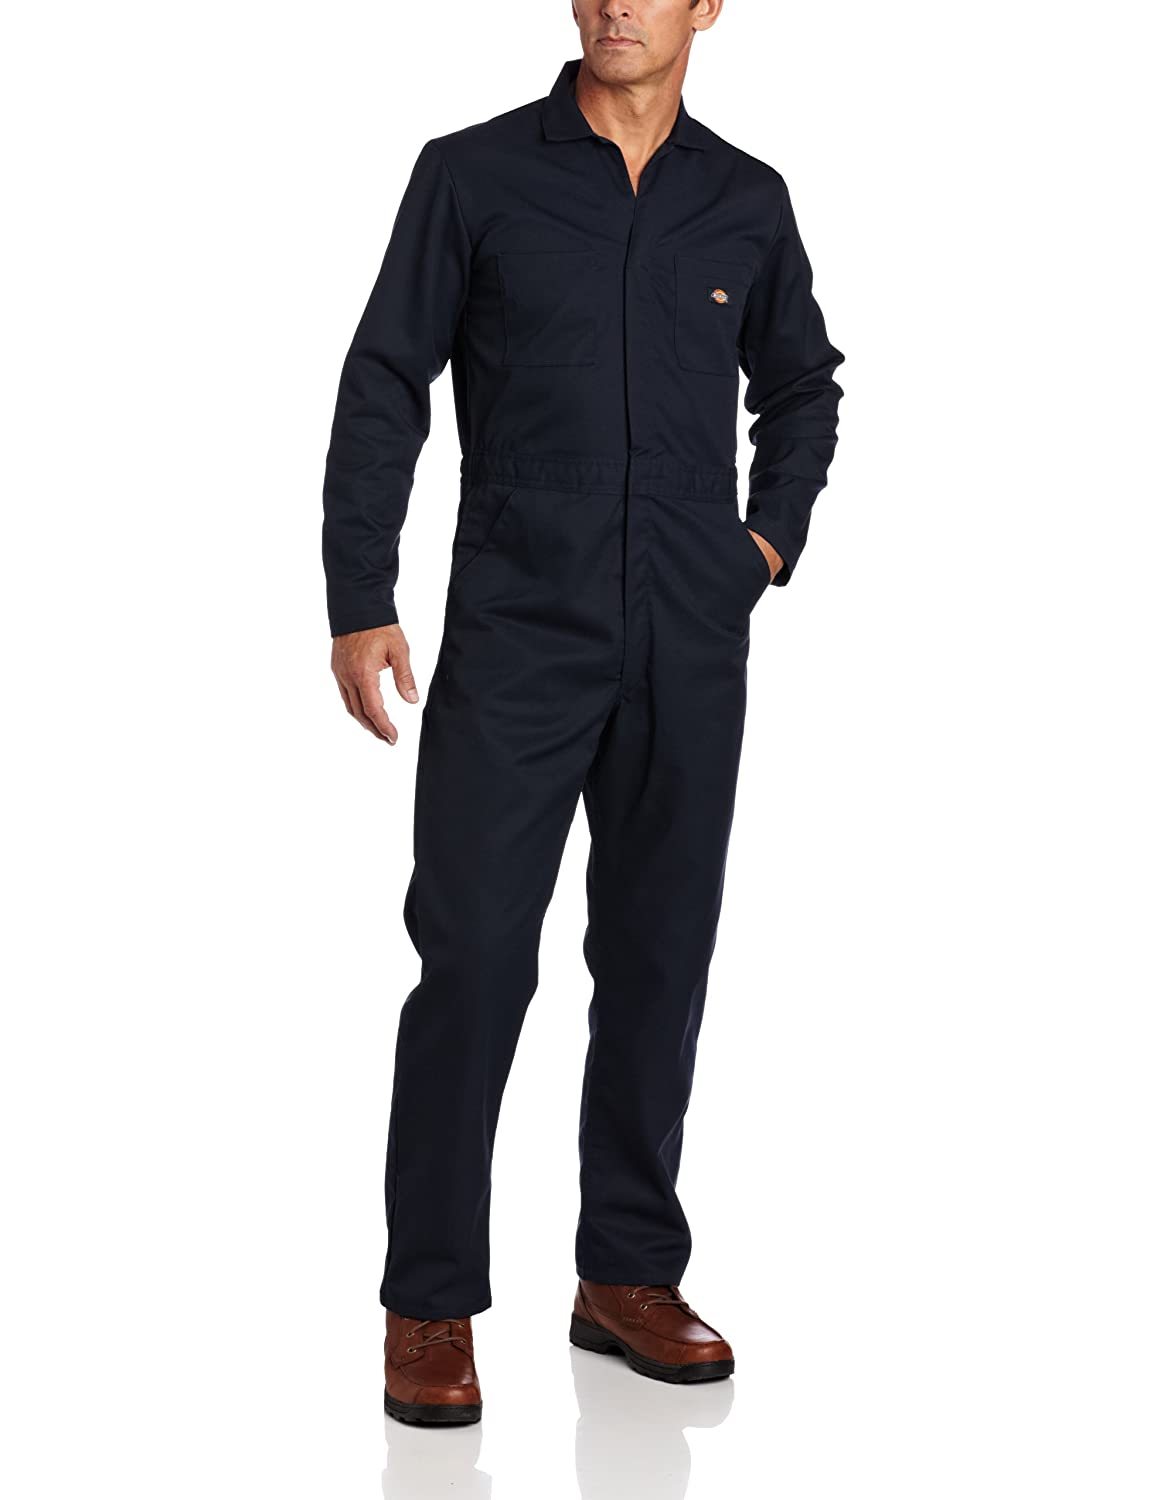 Amazon.com  Dickies Men s Basic Blended Coverall  Overalls And Coveralls  Workwear Apparel  Clothing 7cb4efe54cd